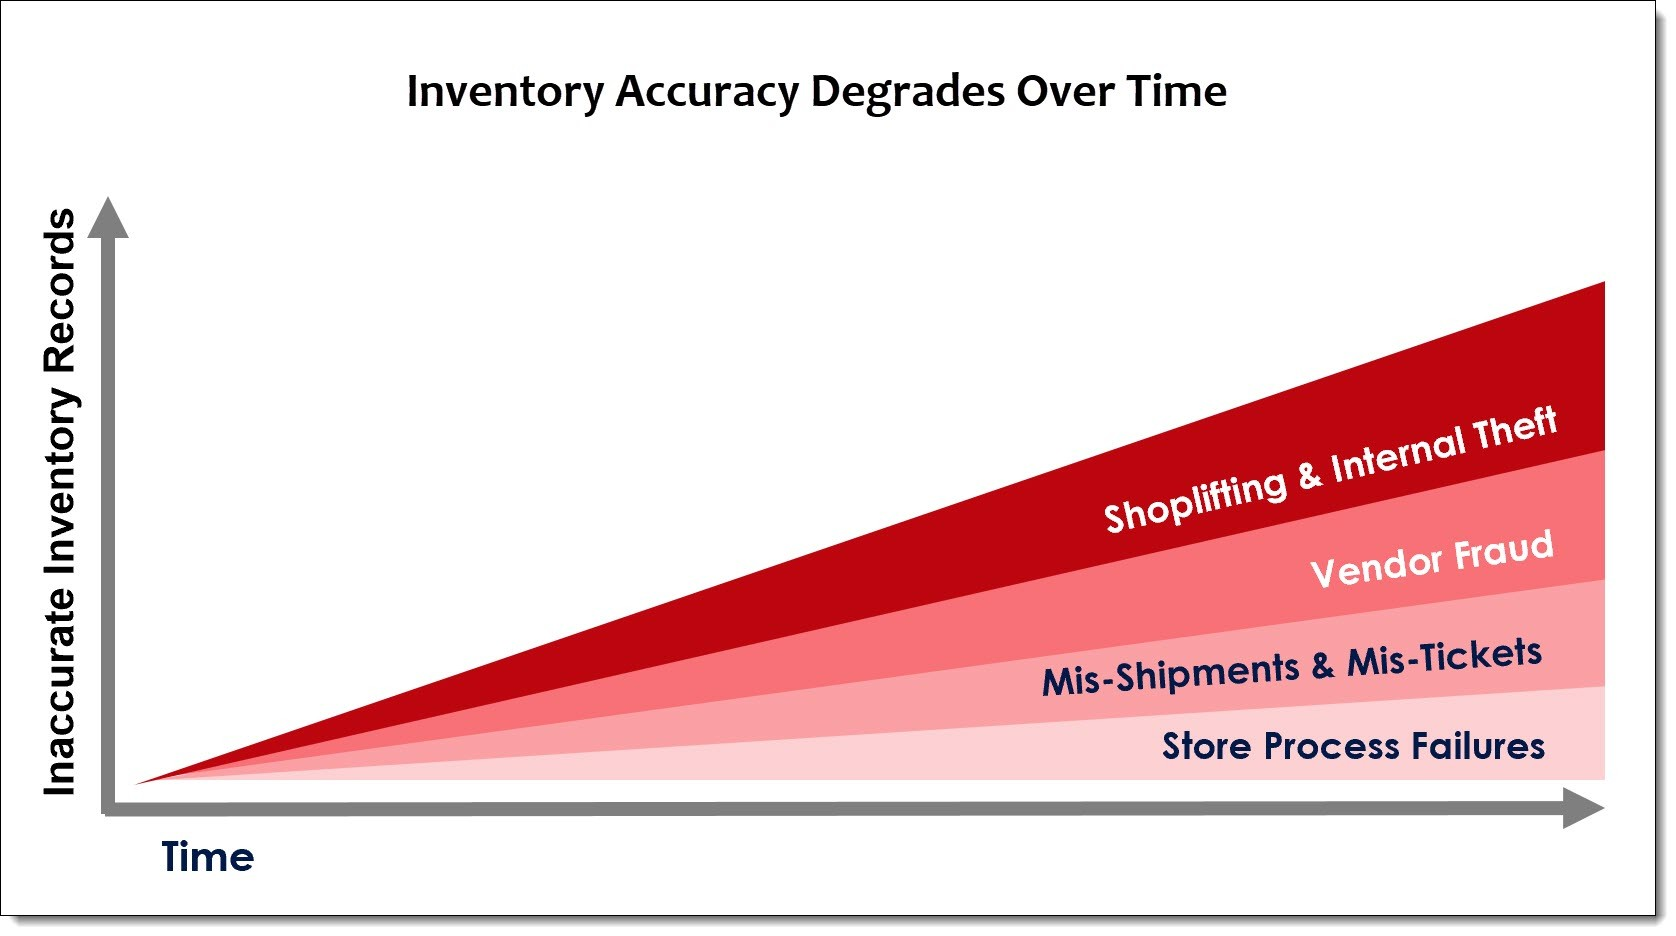 inventory accuracy degrades over time graph